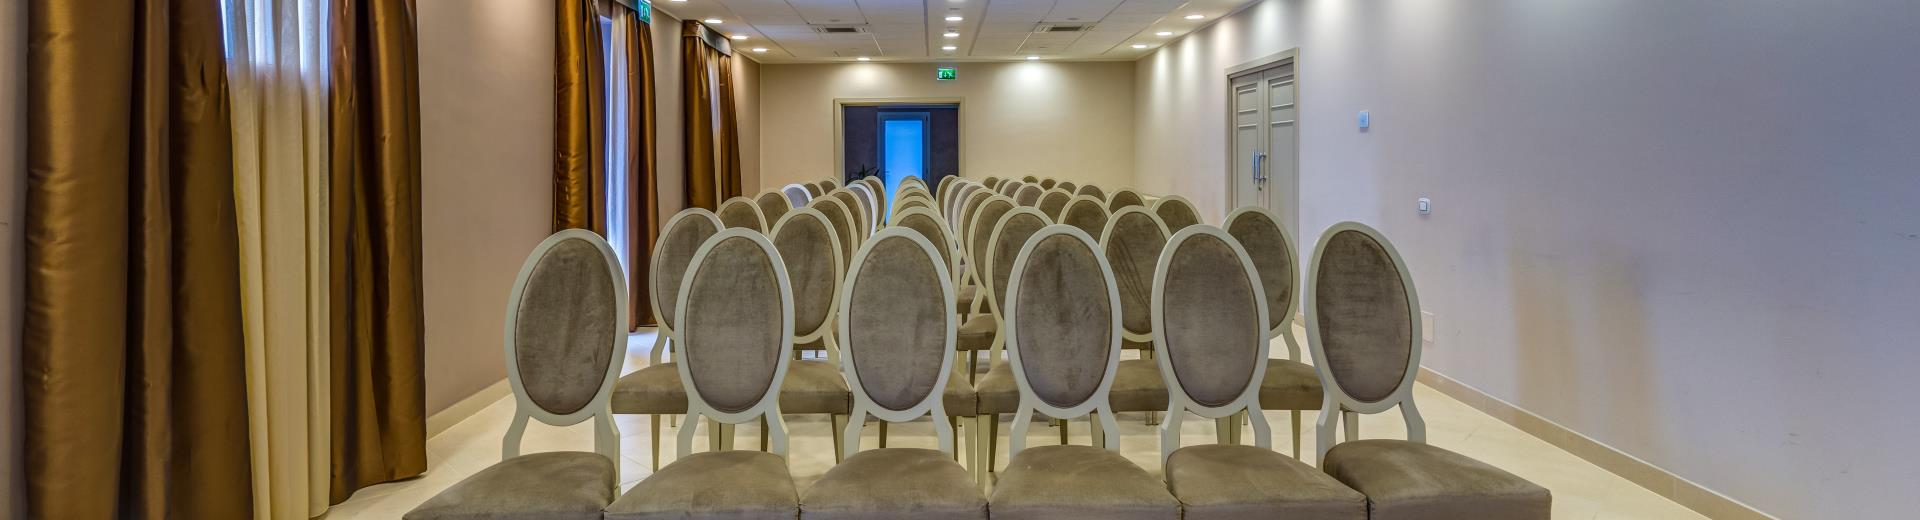 4 star Plus Hotel Perla del Porto provides conference rooms for your meetings